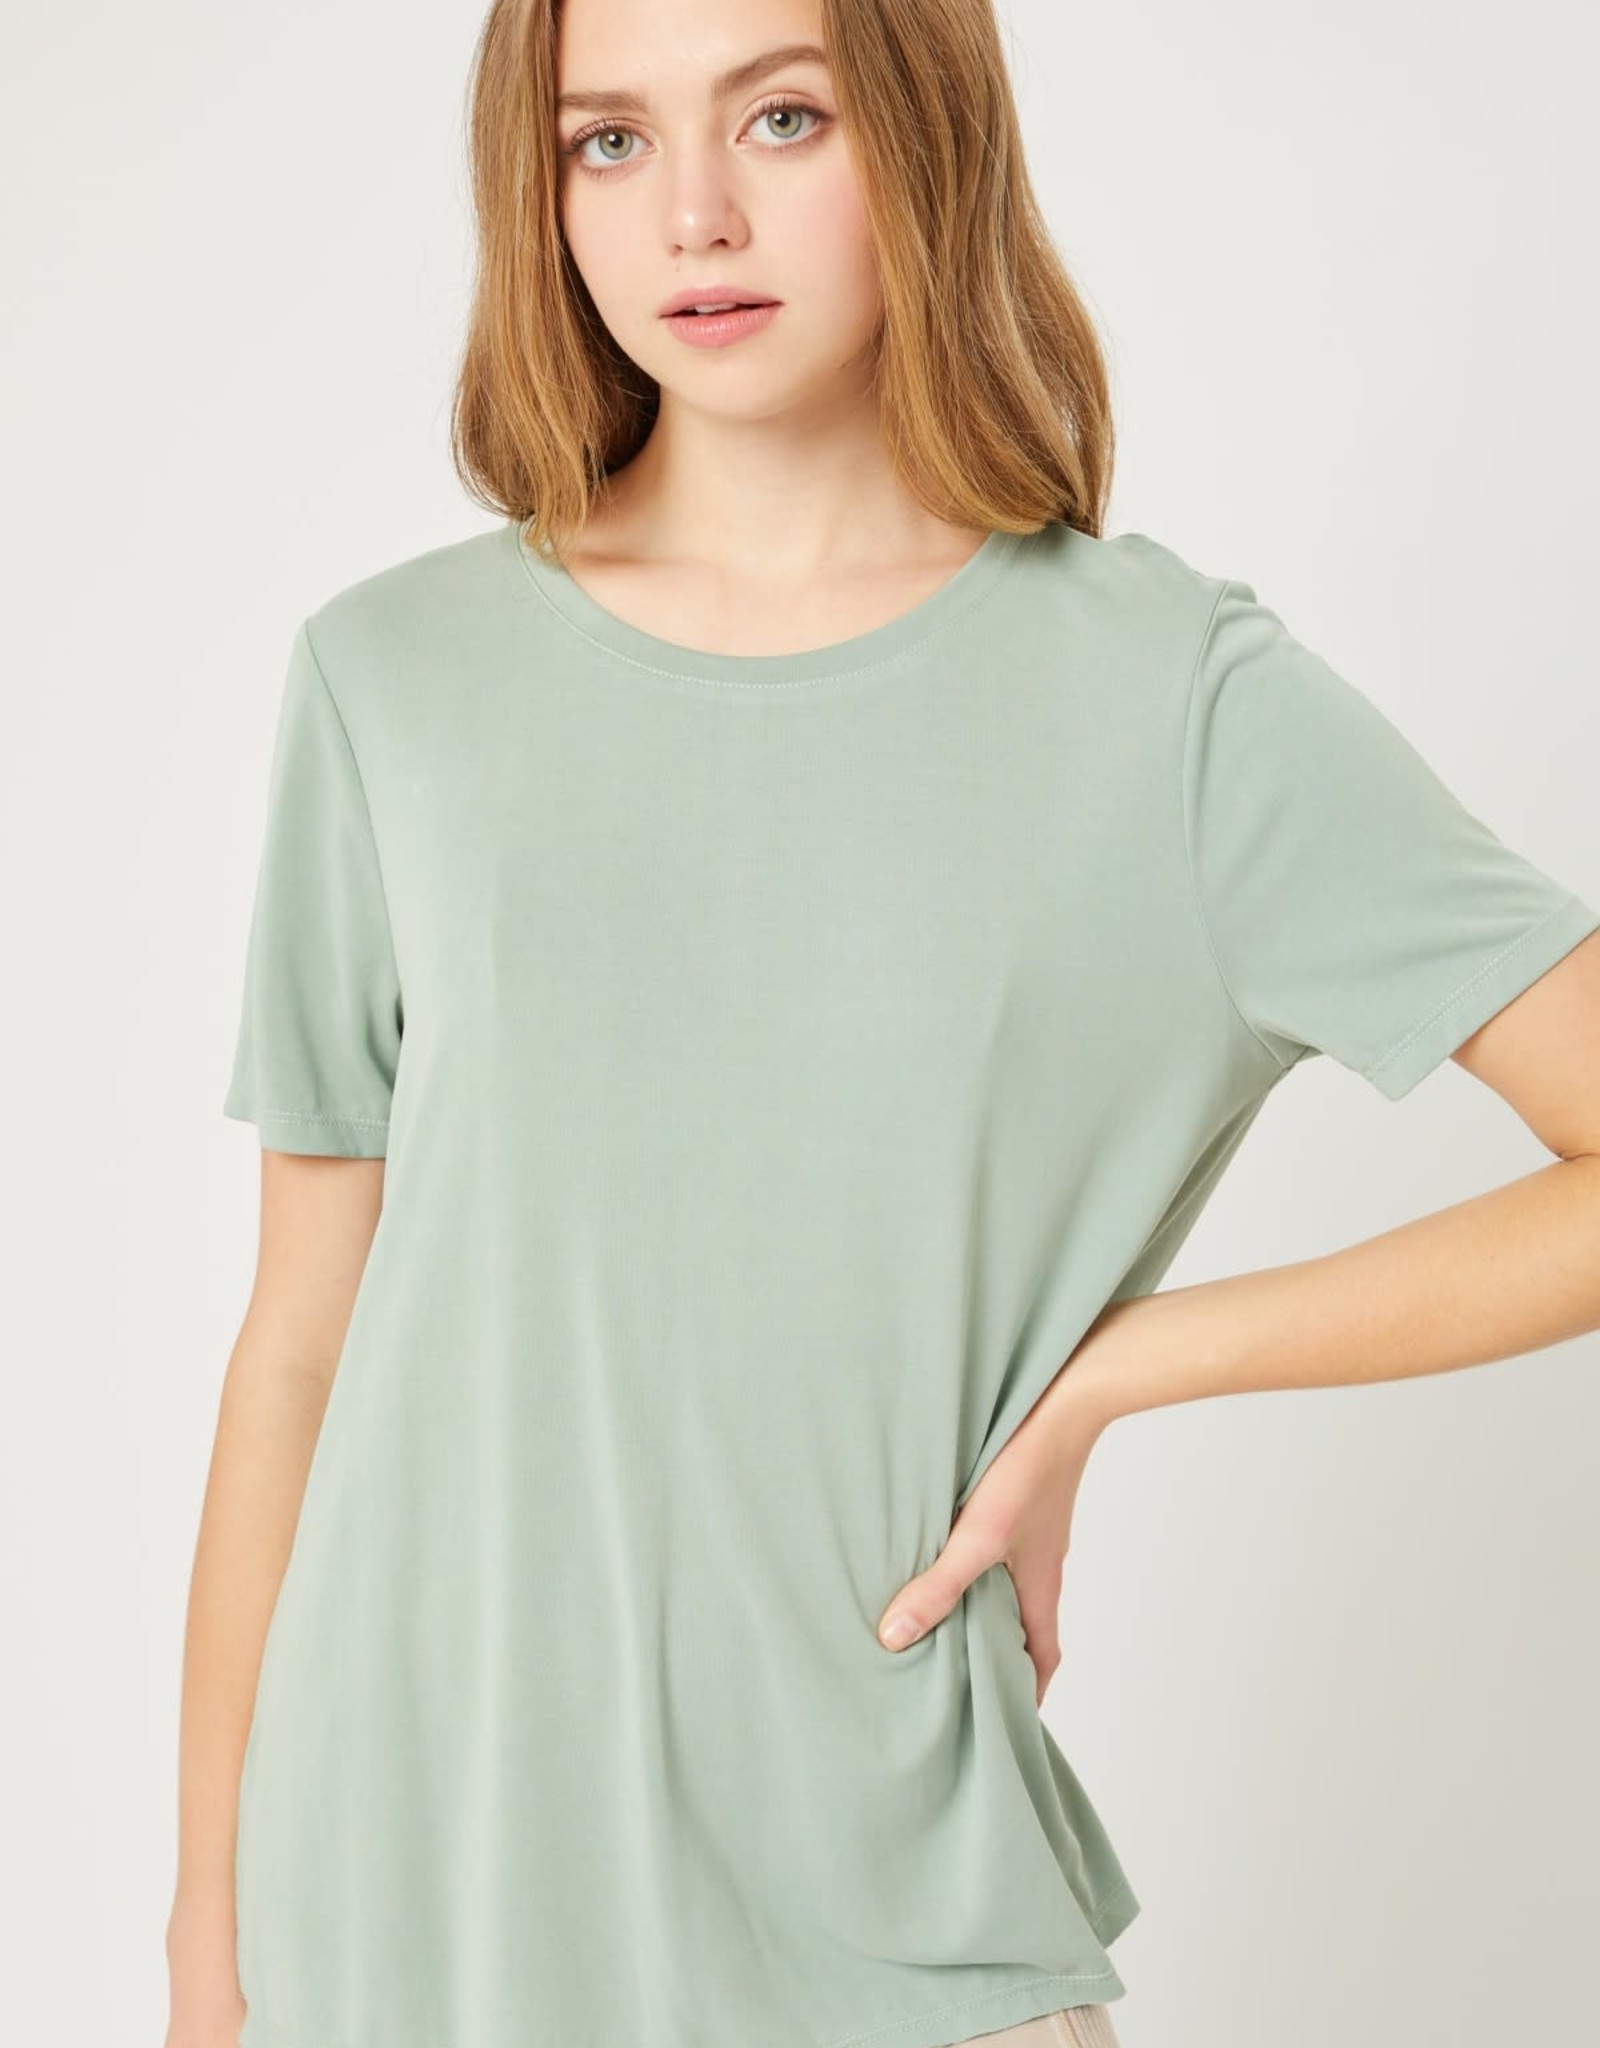 Miss Bliss Boat Neck SS Jersey Top-